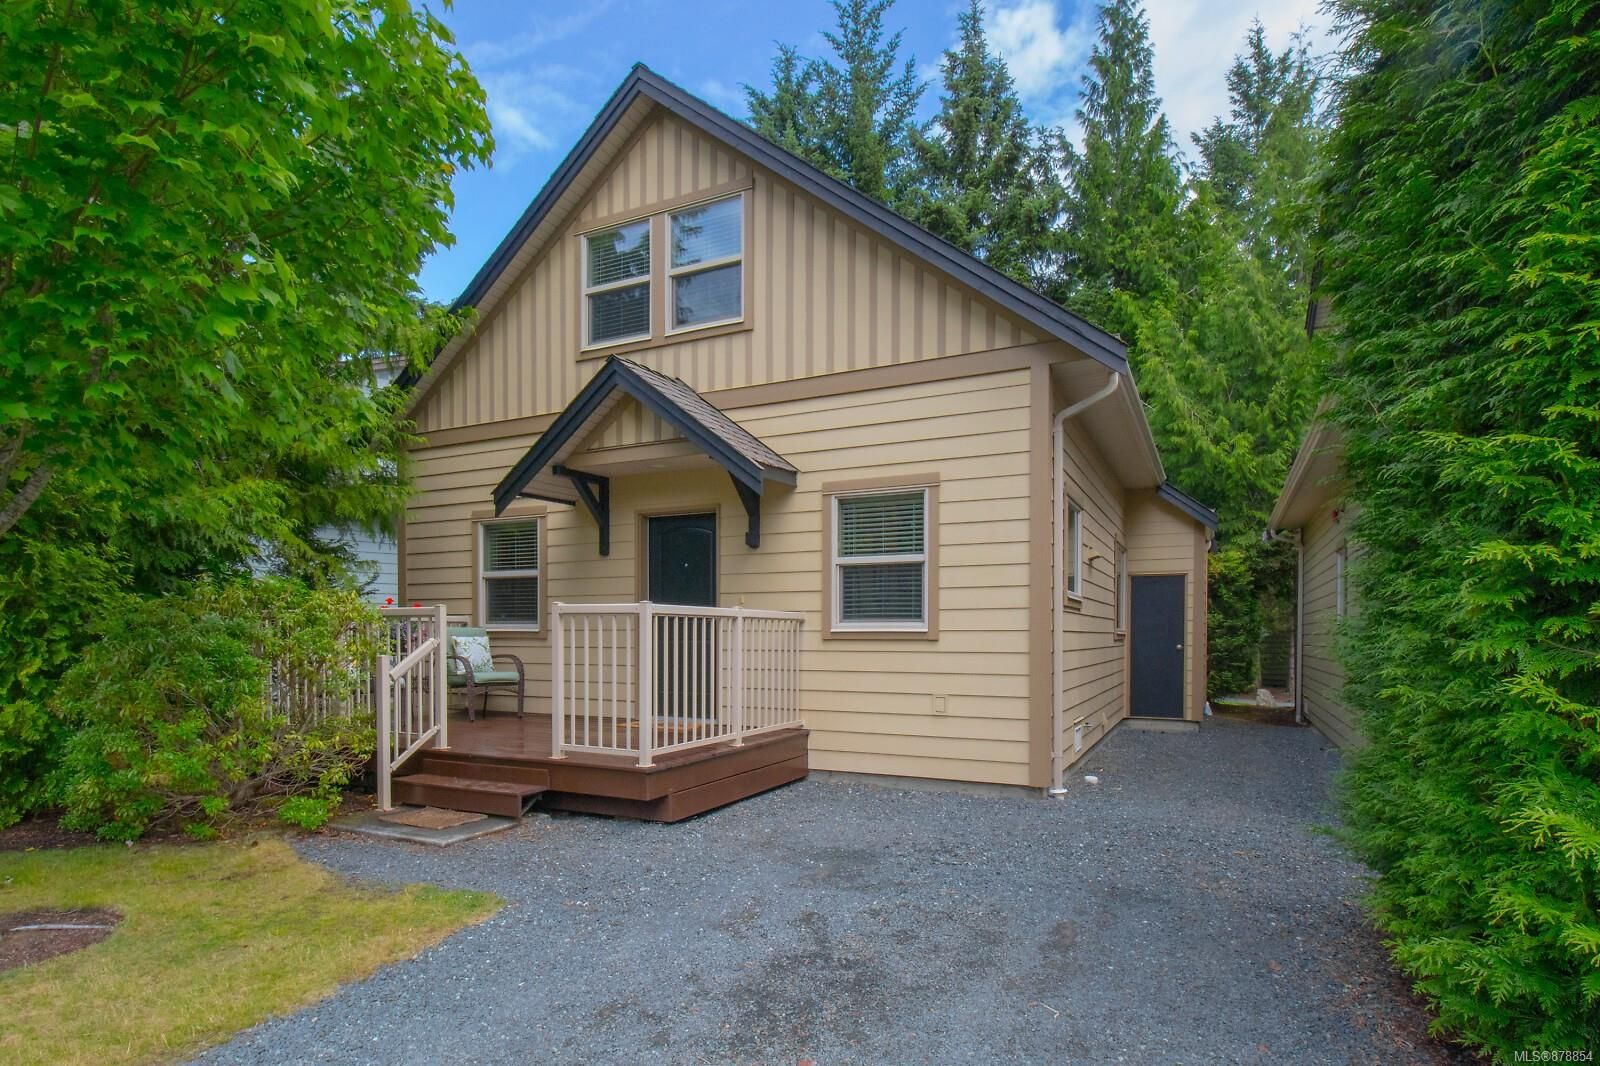 Photo 17: Photos: 223 1130 Resort Dr in : PQ Parksville Row/Townhouse for sale (Parksville/Qualicum)  : MLS®# 878854